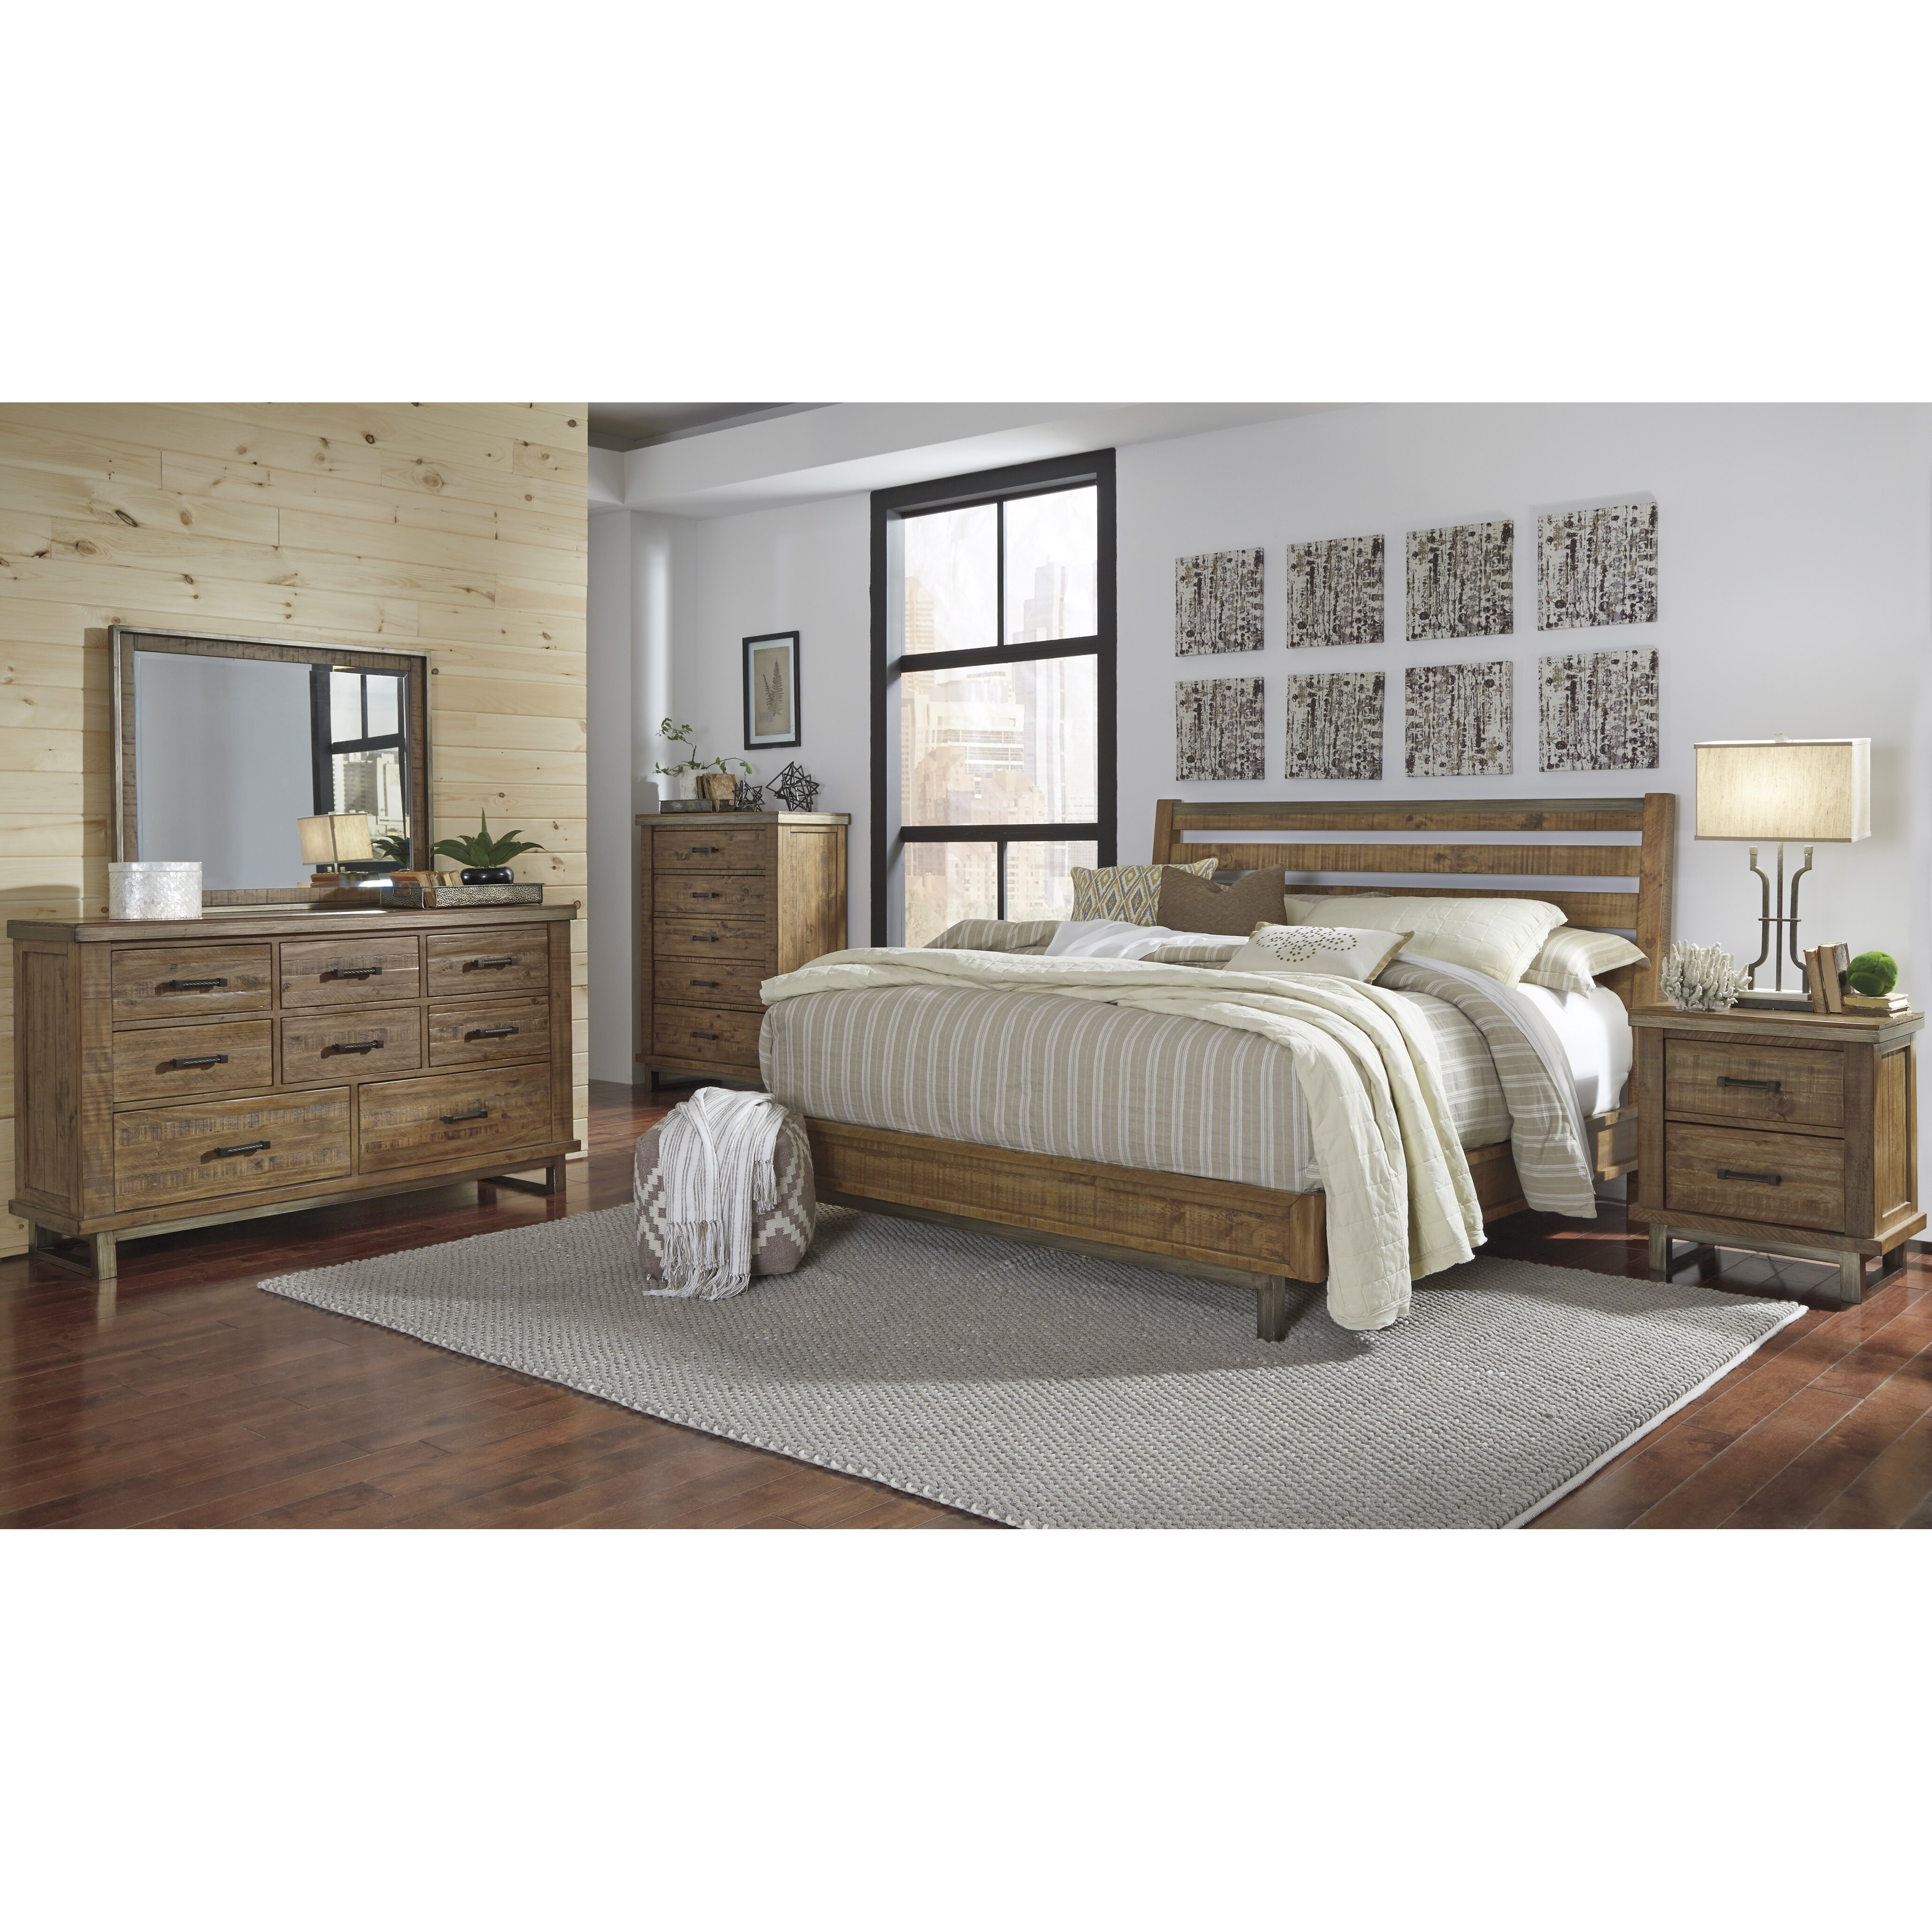 Signature design by ashley dondie queen platform for Signature bedroom furniture